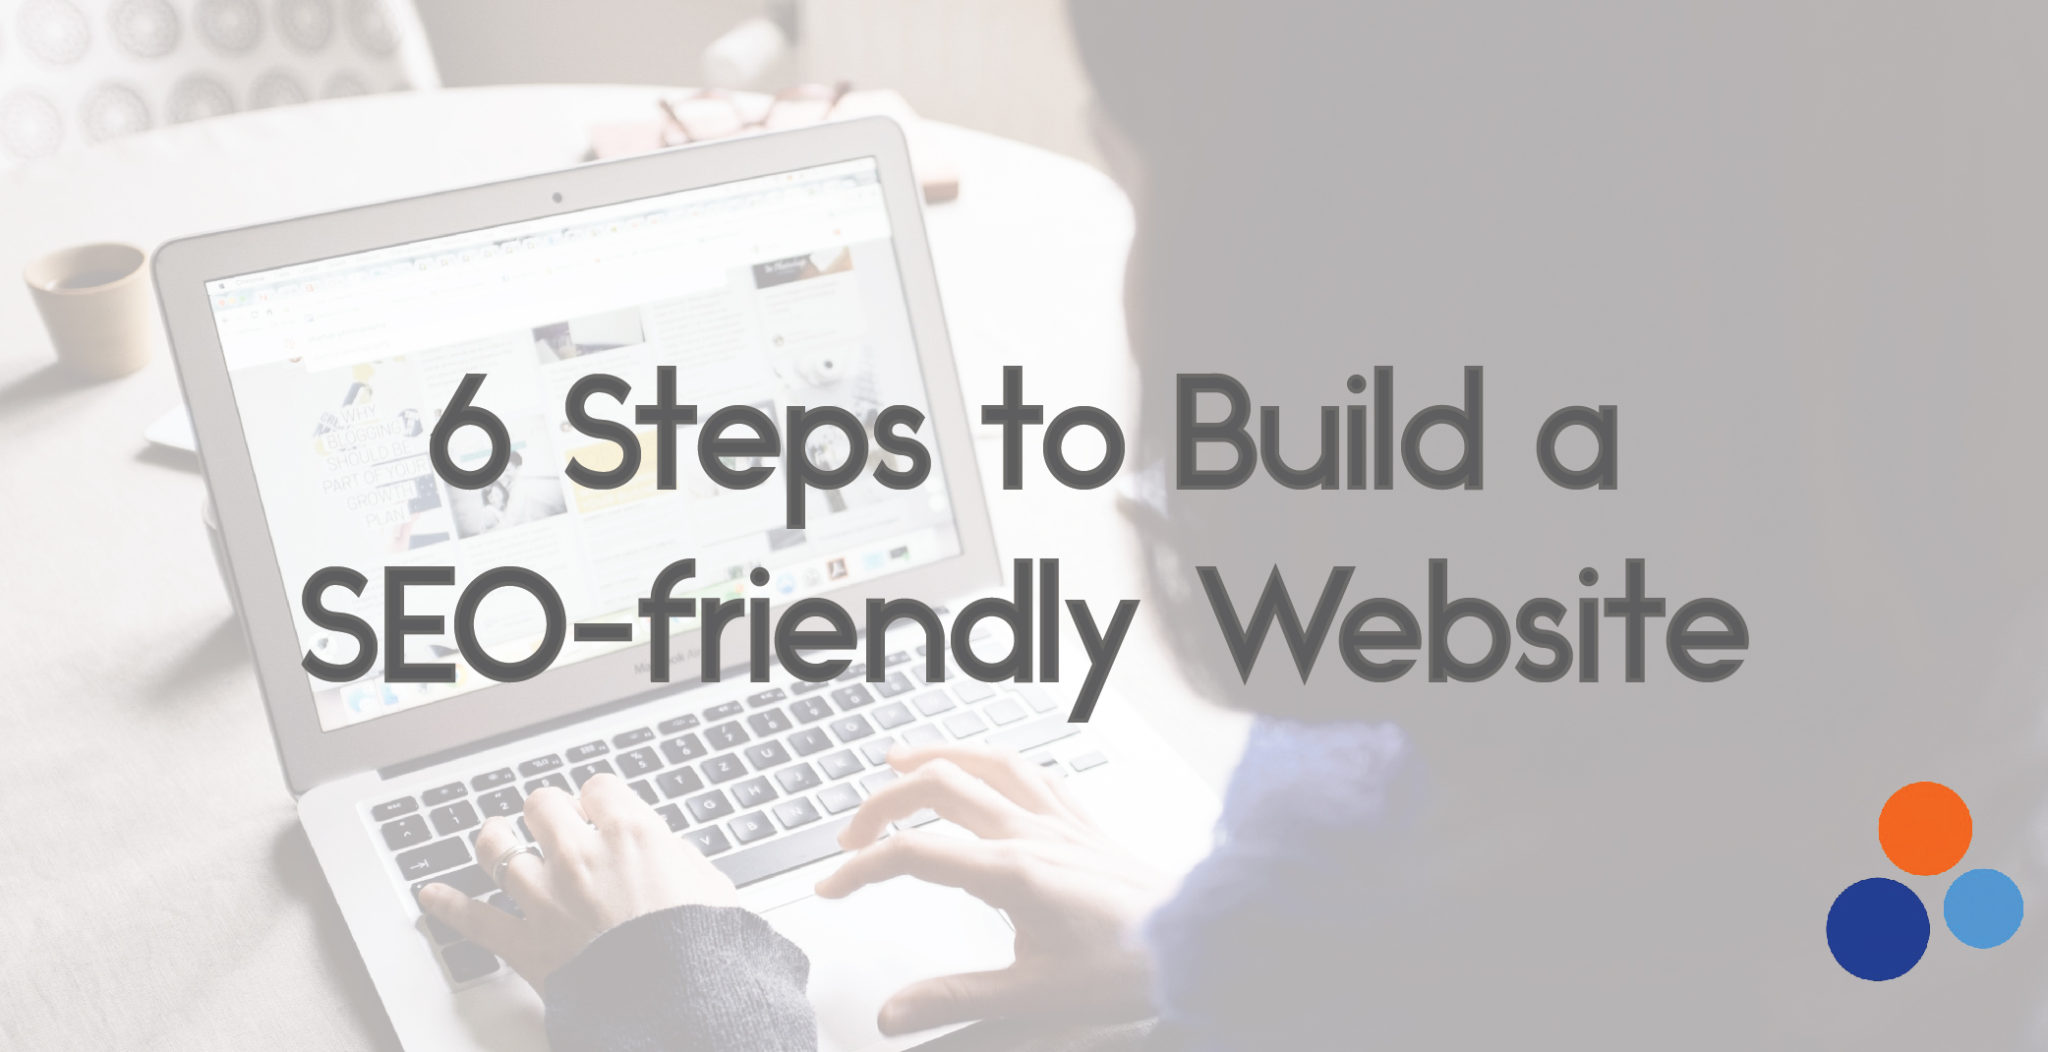 6 steps to build an SEO-friendly website